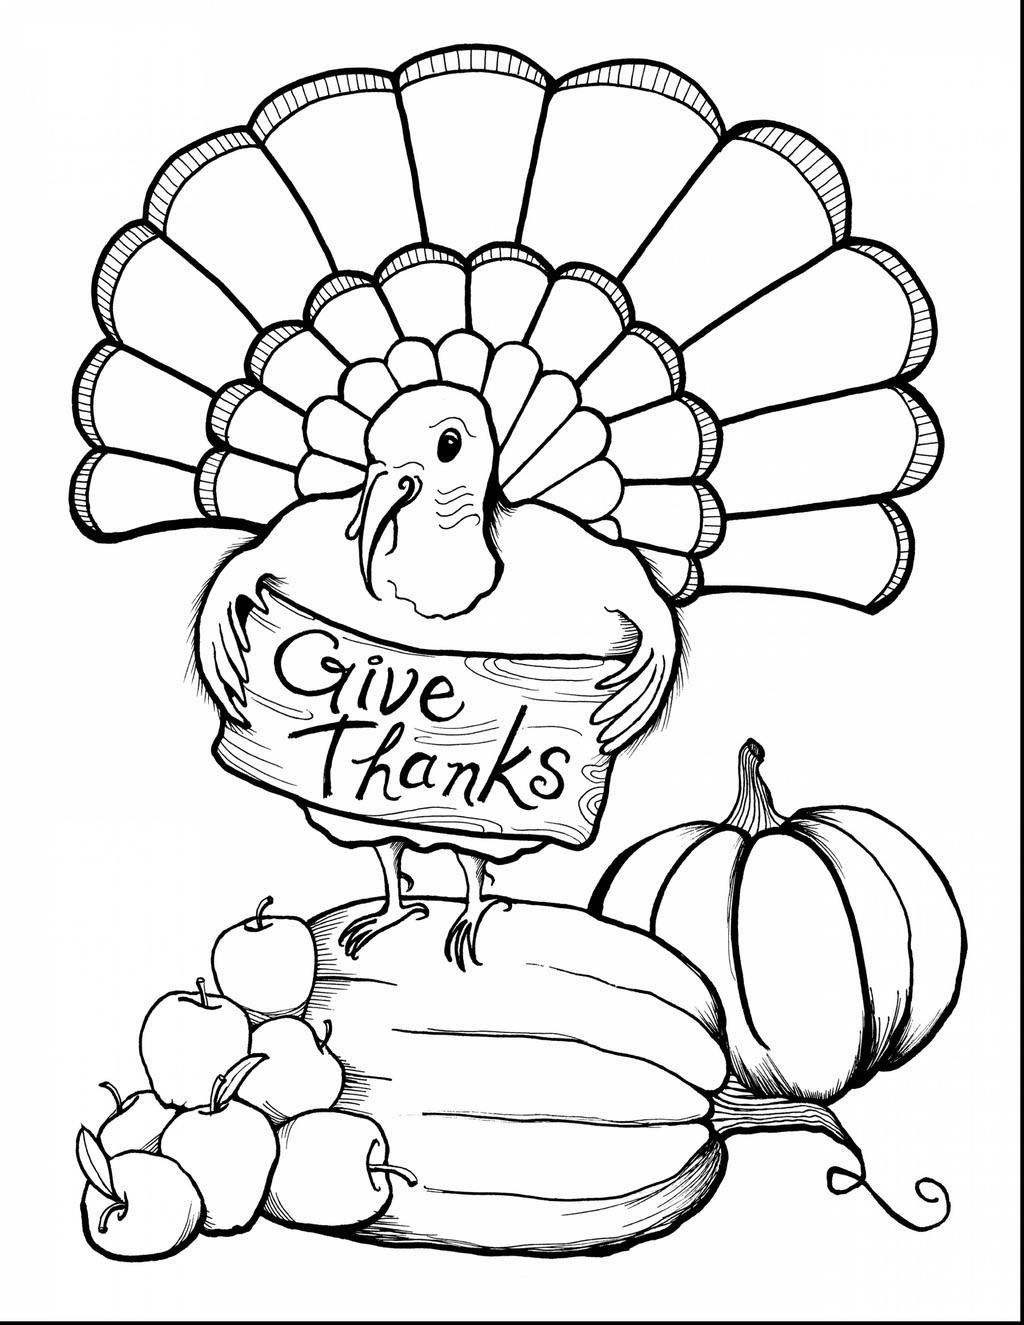 Happy Thanksgiving Coloring Pages For Boys  Thanksgiving Coloring Pages ful Happy for Boys Free